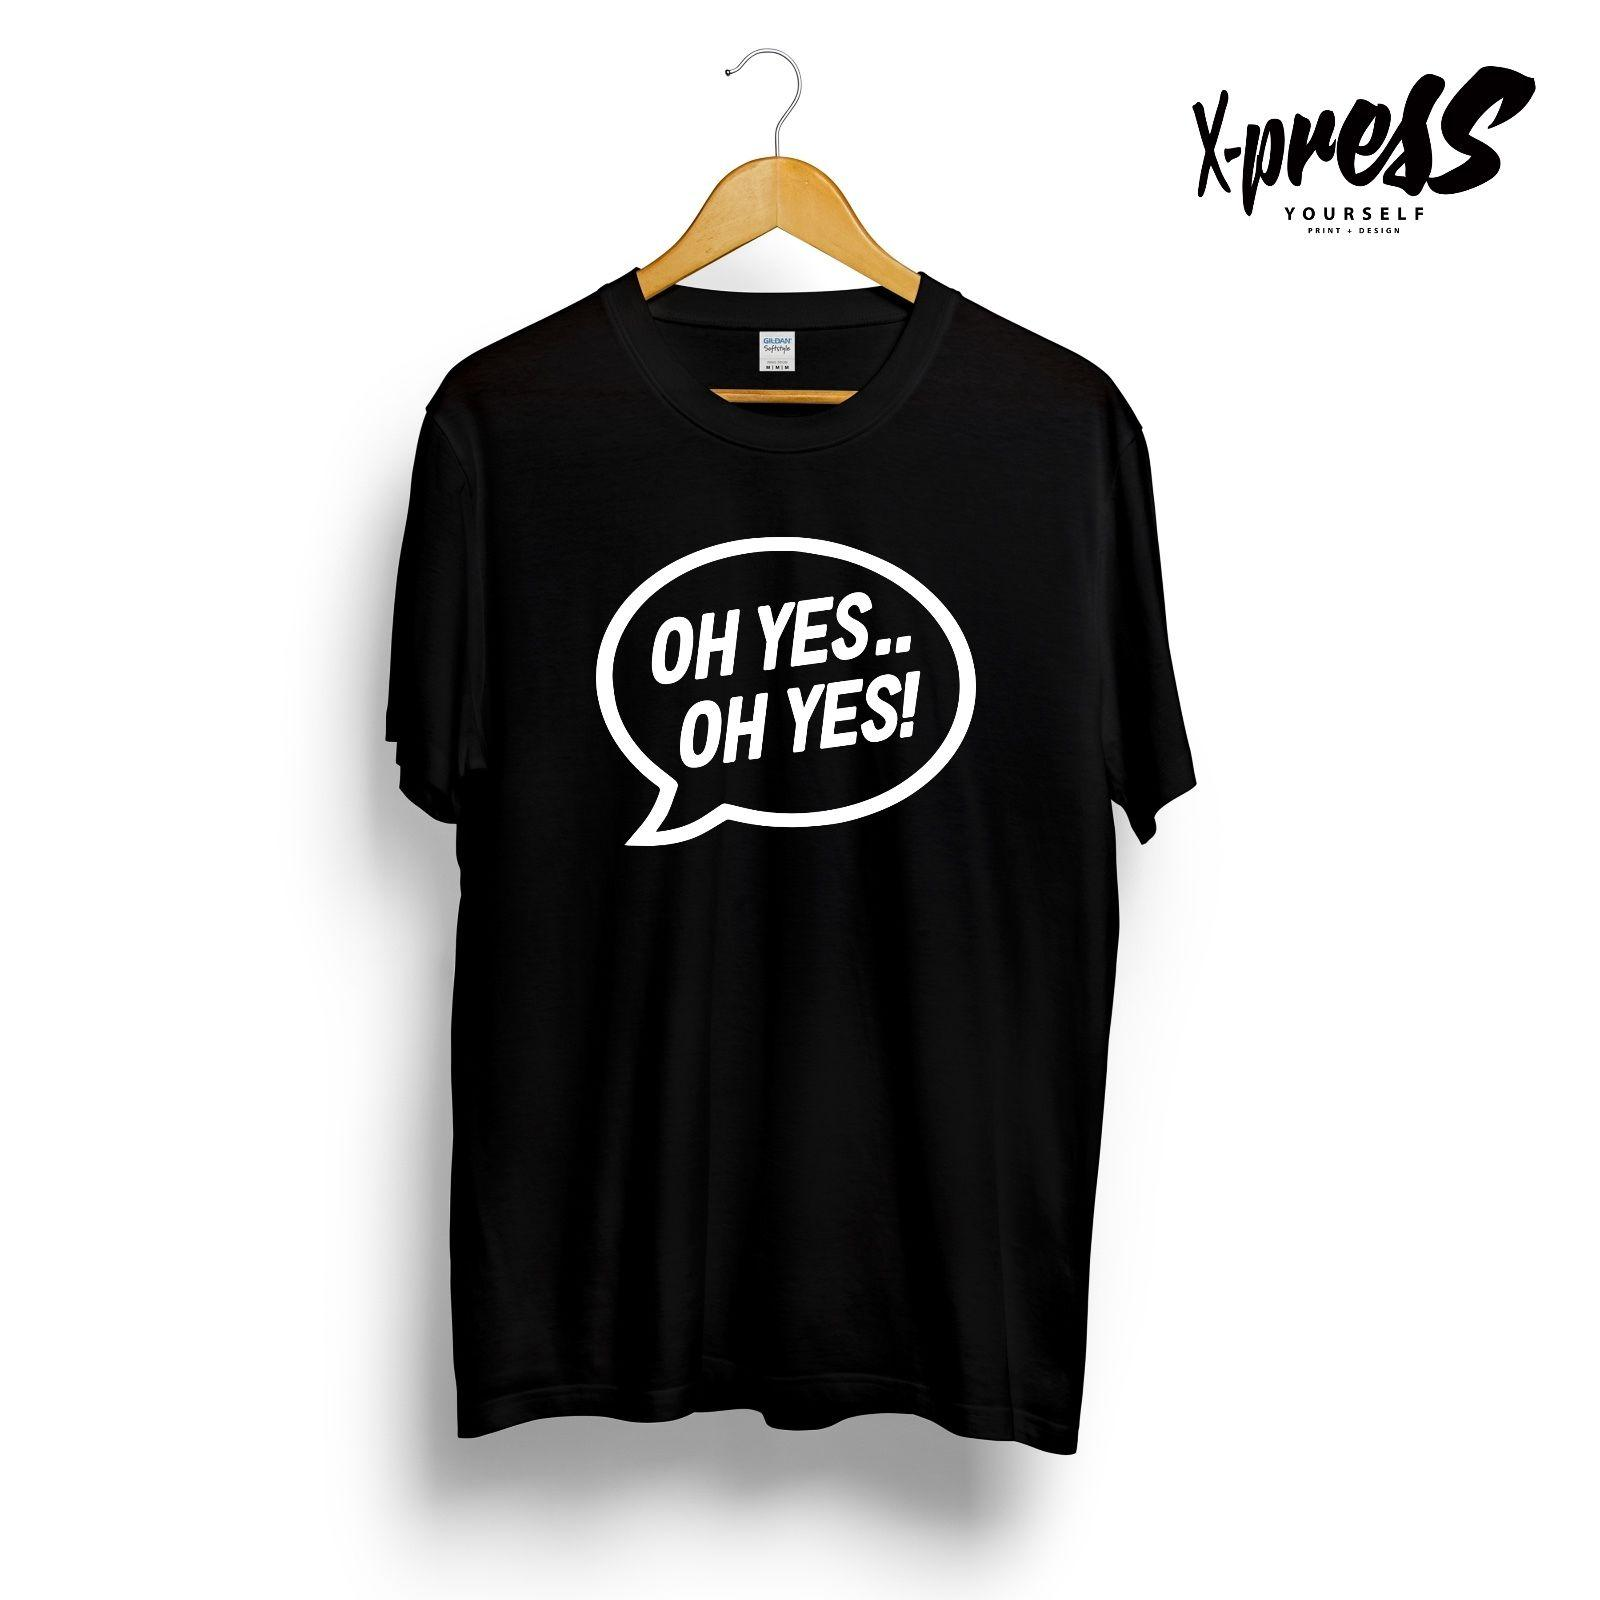 0db8289db1ce OH YES OH YES PRINTED MENS MUSIC SLOGAN TSHIRT CARL COX SPACE IBIZA ...